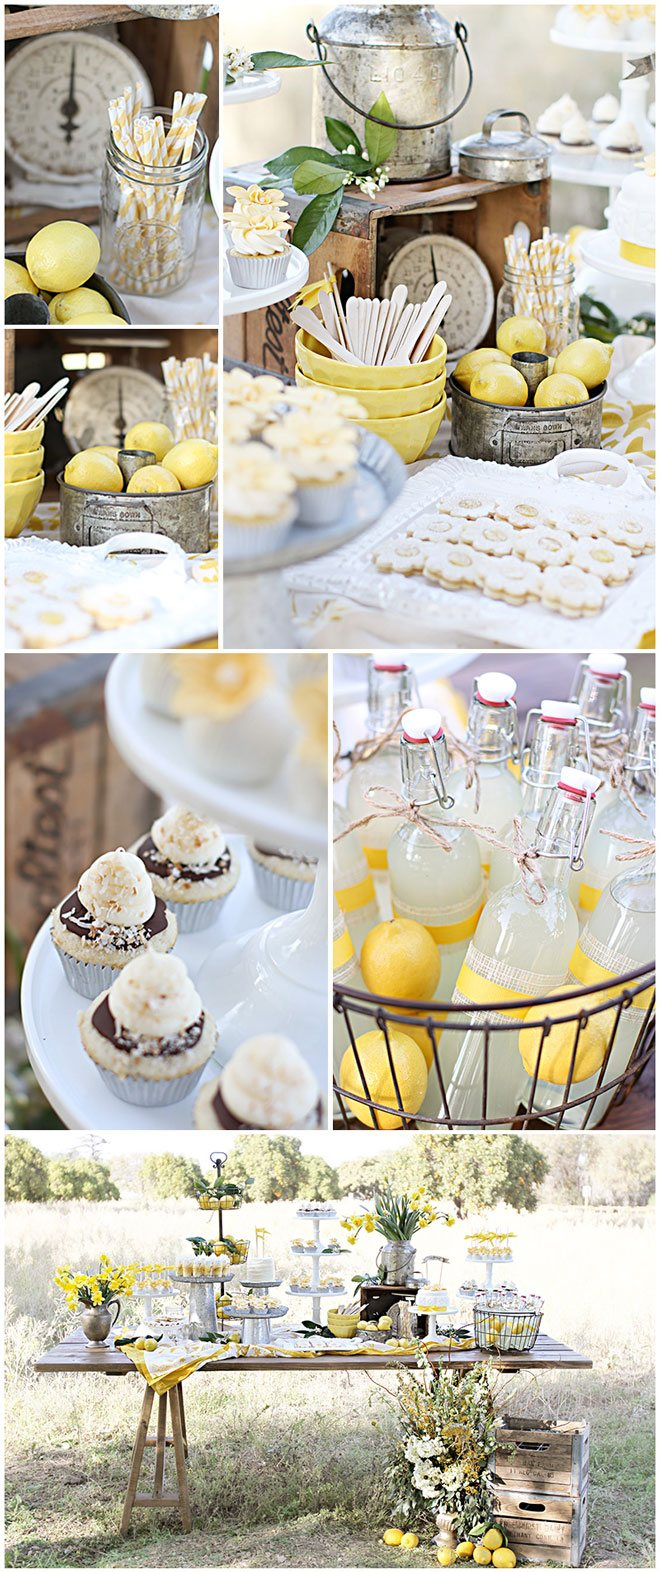 Lemon Dessert Table Feature on Love The Day